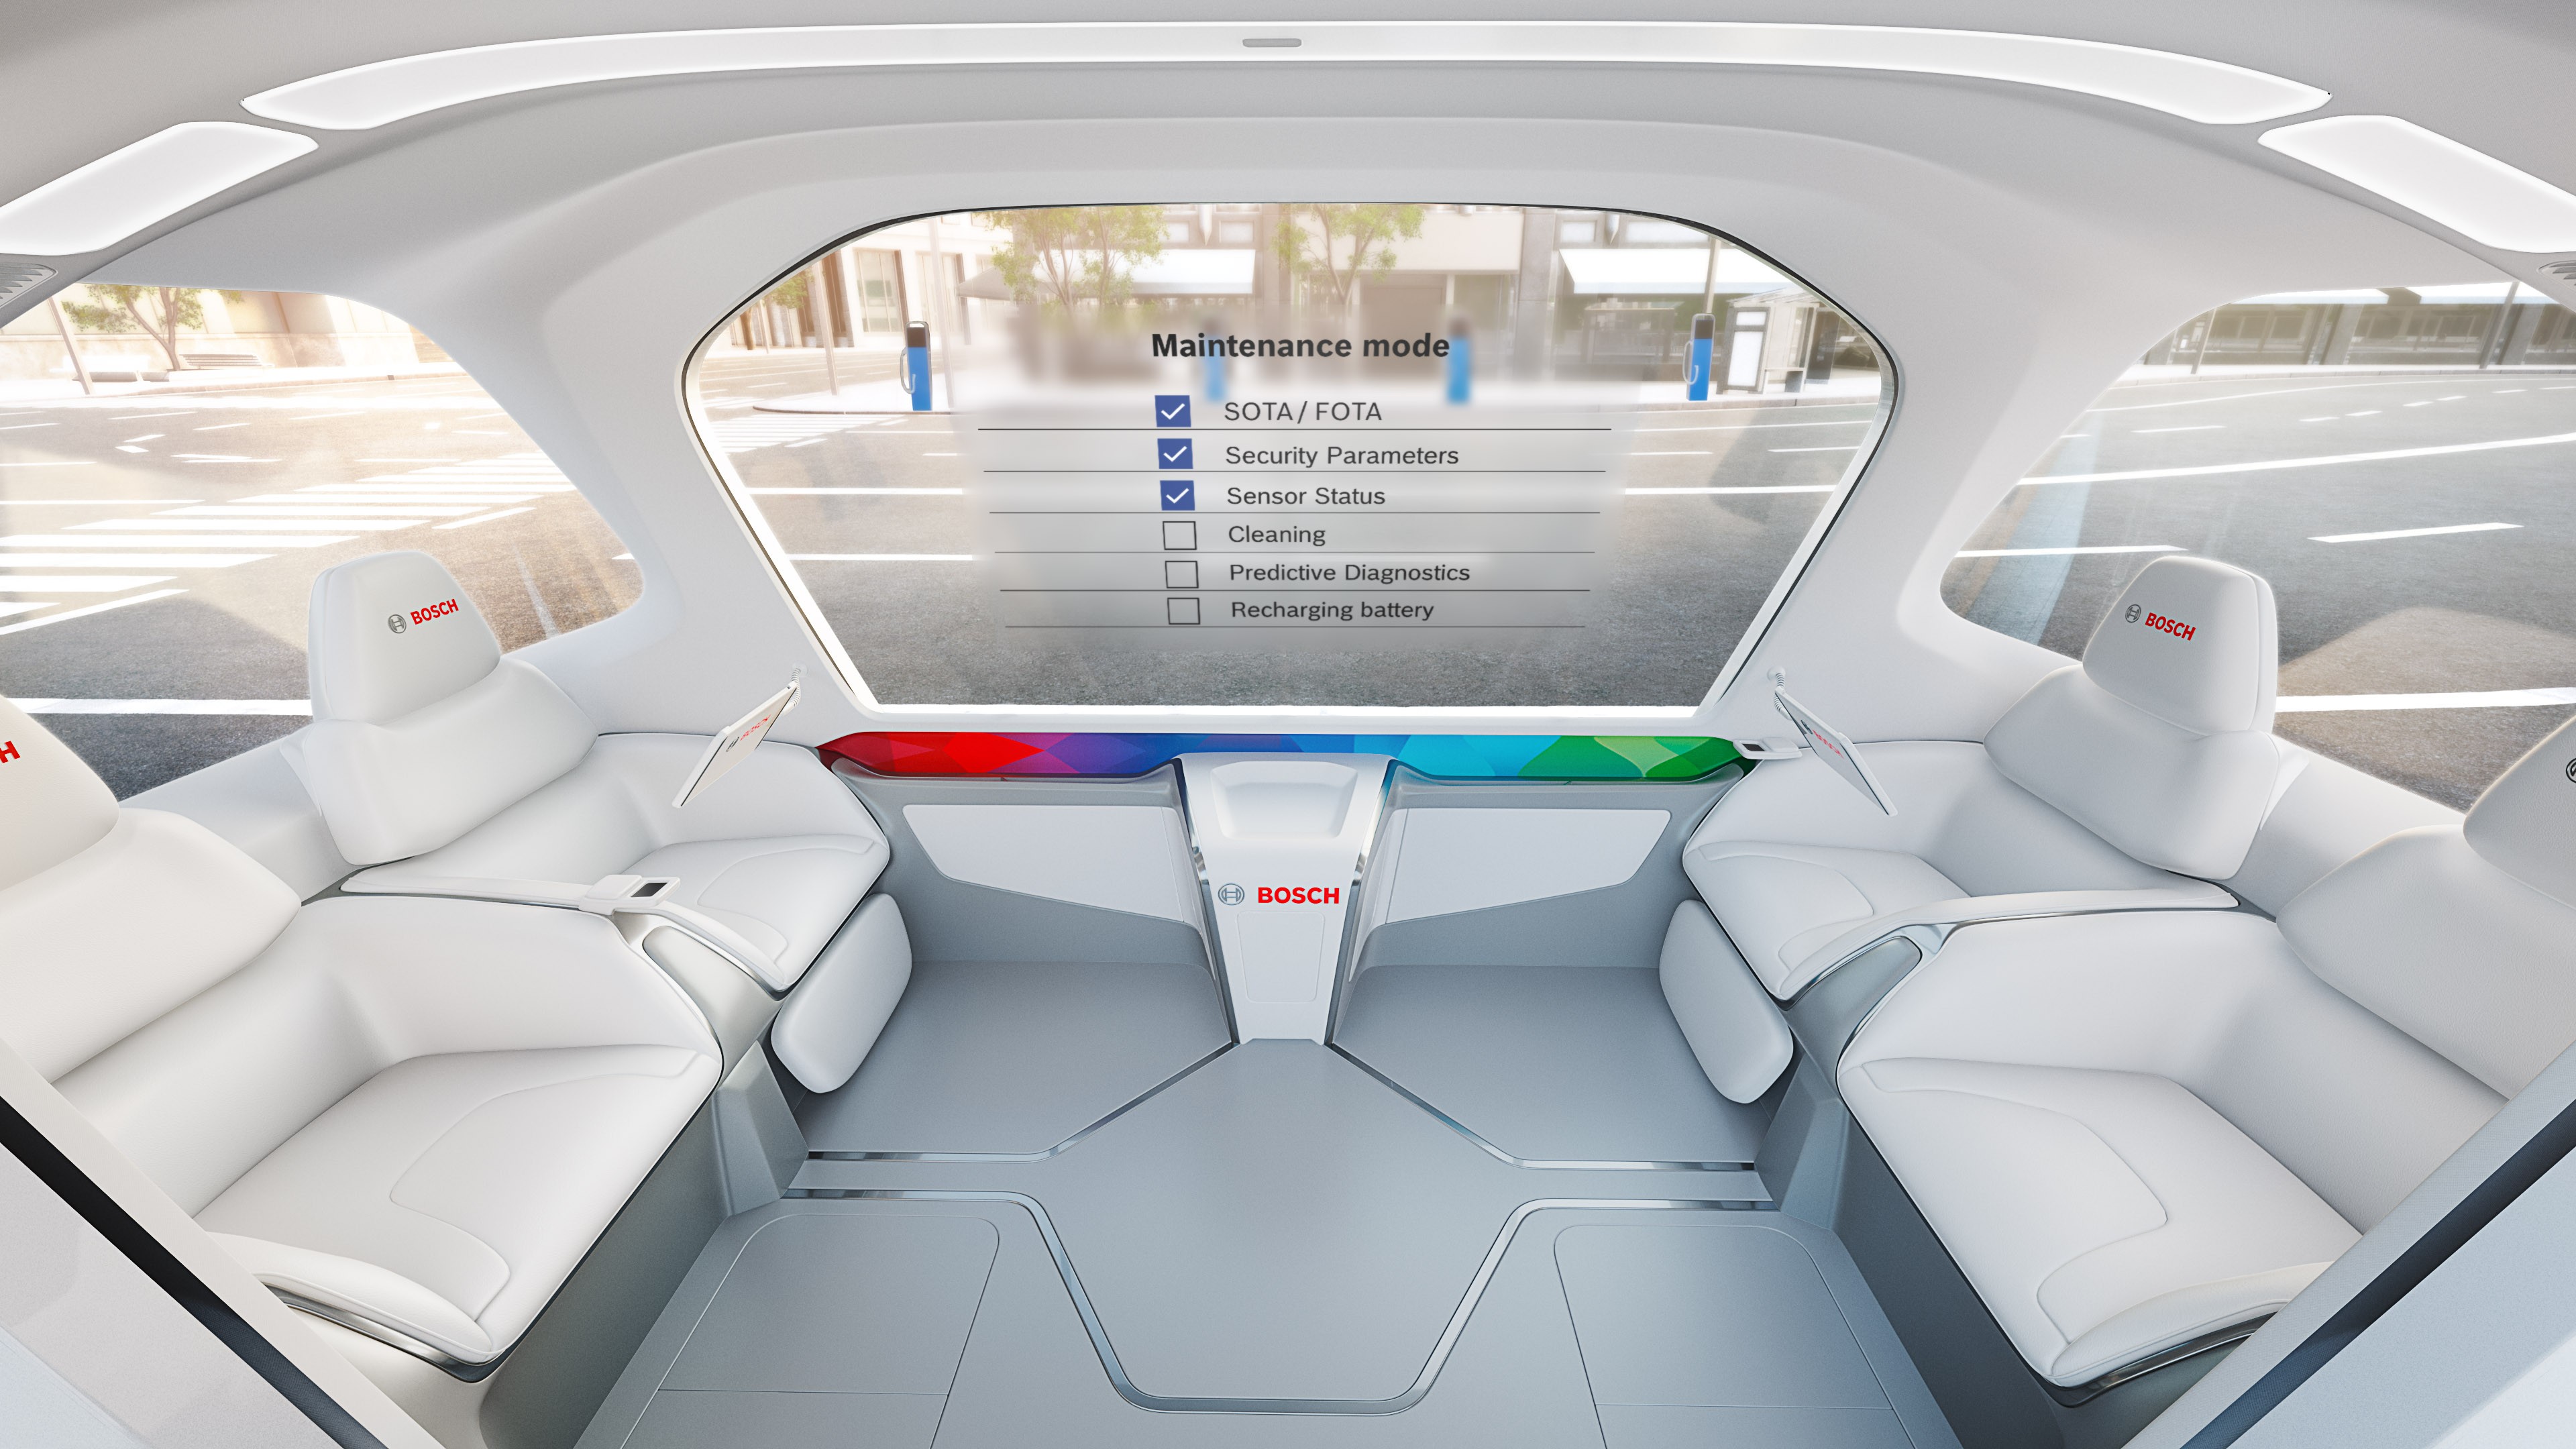 Mobility services from Bosch to easily maintain shuttle vehicles